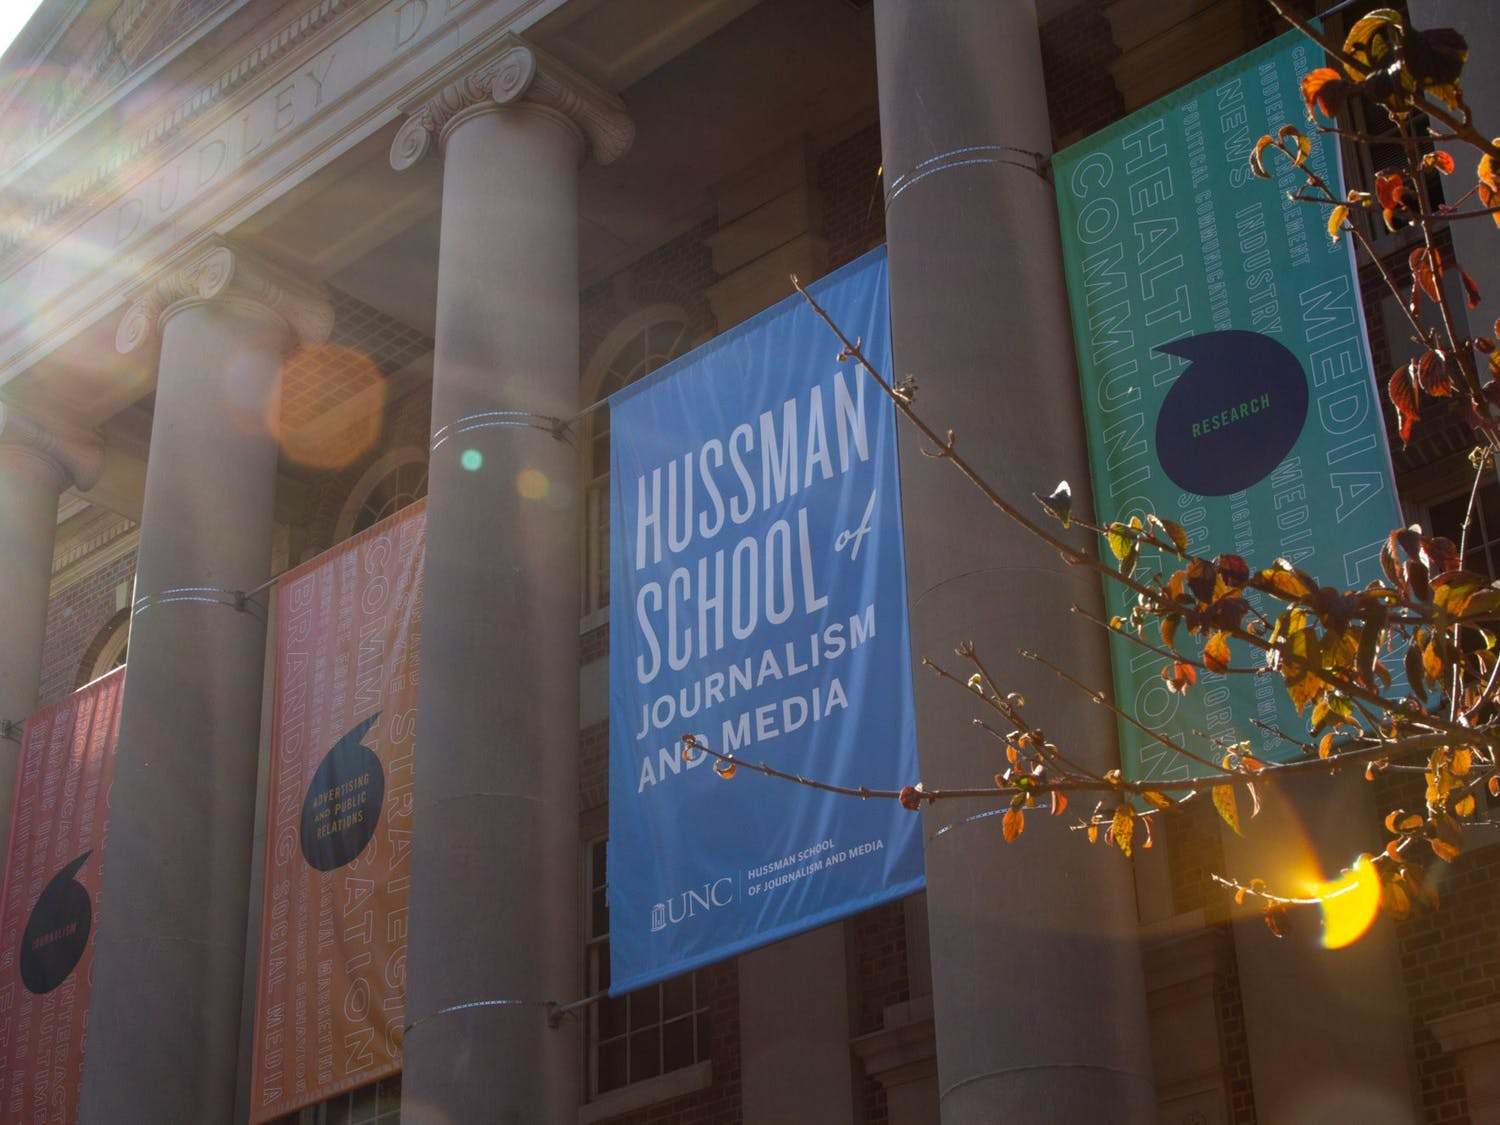 The banners hanging over Carrol Hall, home to UNC's Hussman School of Media and Journalism, on Nov. 11, 2020.